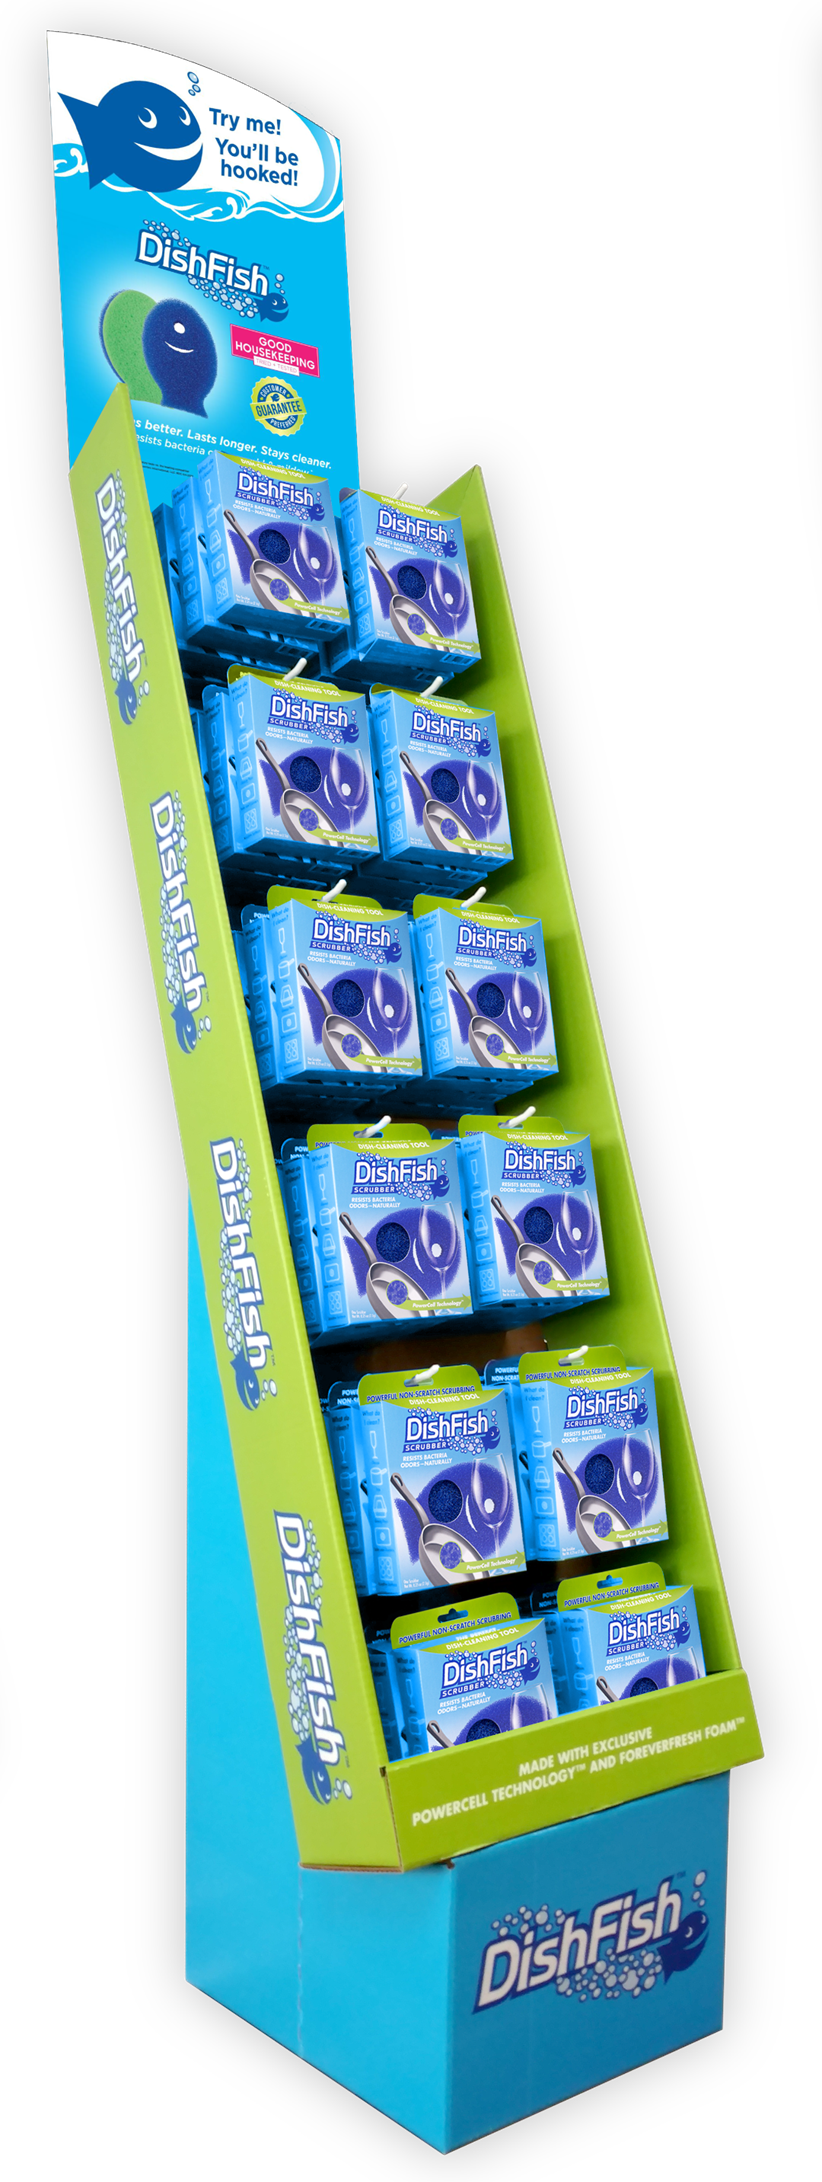 dishfish-scrubber-floor-display-shipper-late-2018.png